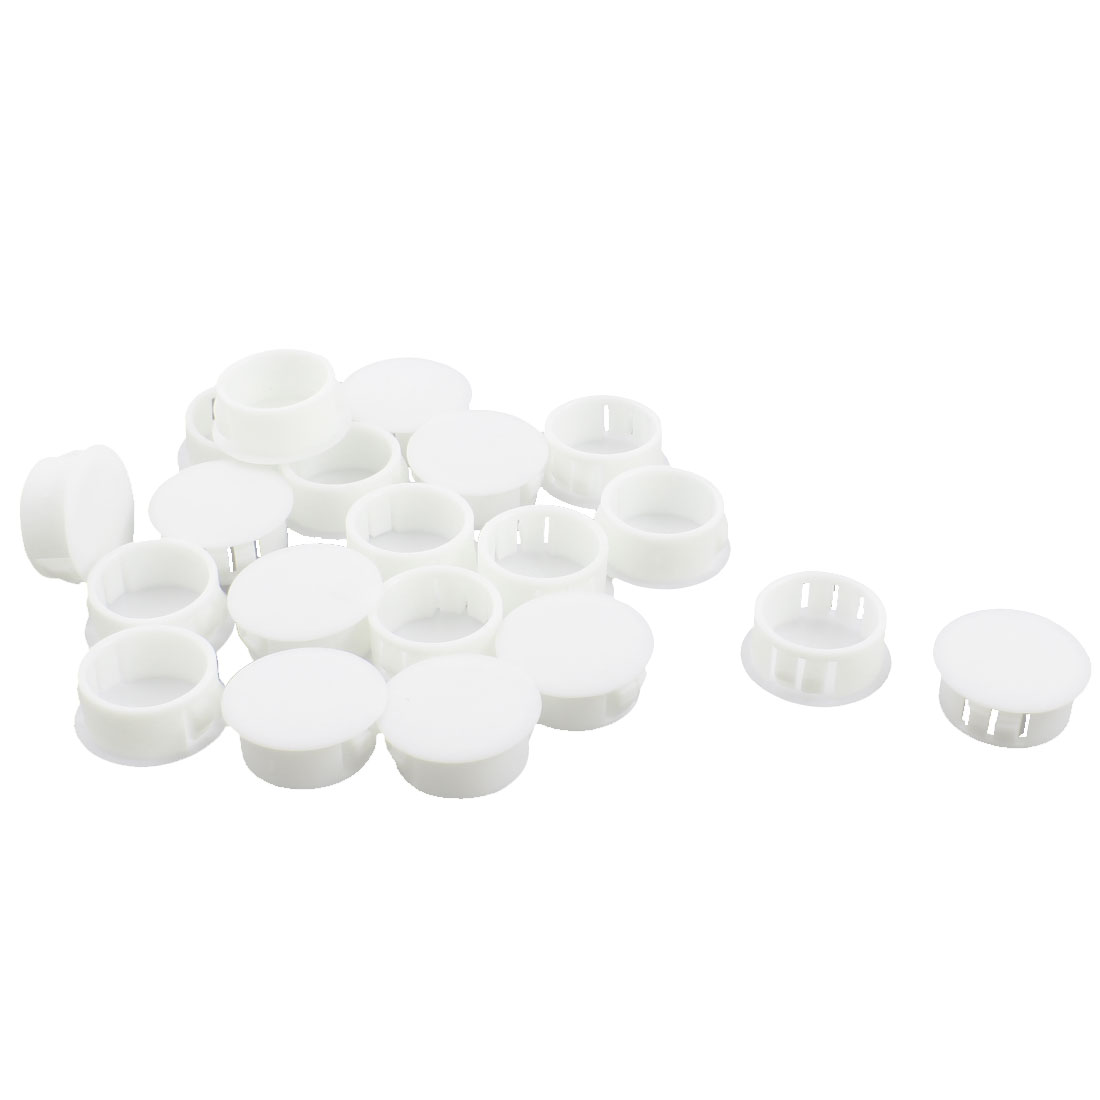 20 Pcs SKT-22 22.1mm Insulated White Plastic Snap in Mount Blank Domed Lock Hole Cover Harness Fastener